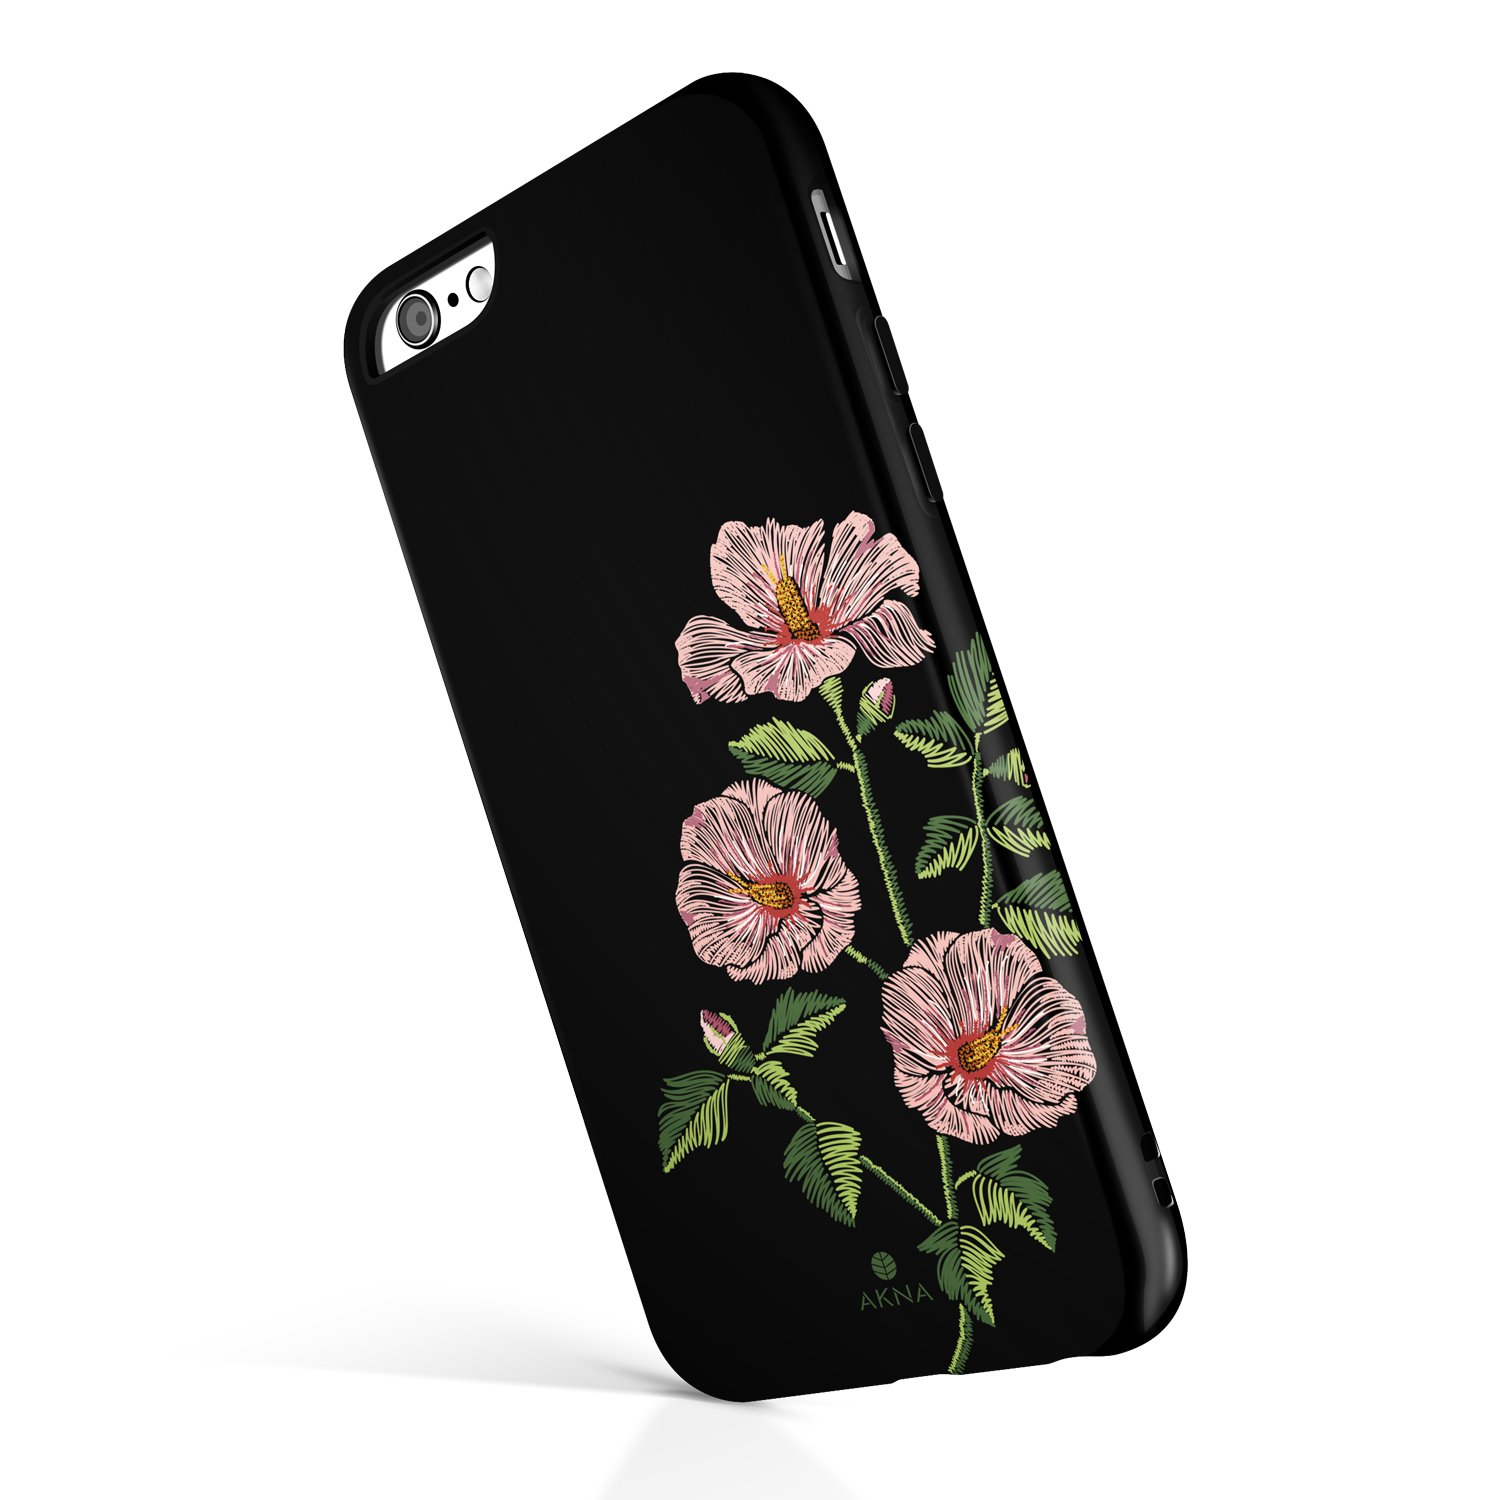 iPhone 6/6s case Floral, Akna Charming Series High Impact Flexible Silicon Case for Both iPhone 6 & iPhone 6s [Floral Peony](782-C.A) Akna Inc. i6_CS_UK_0055